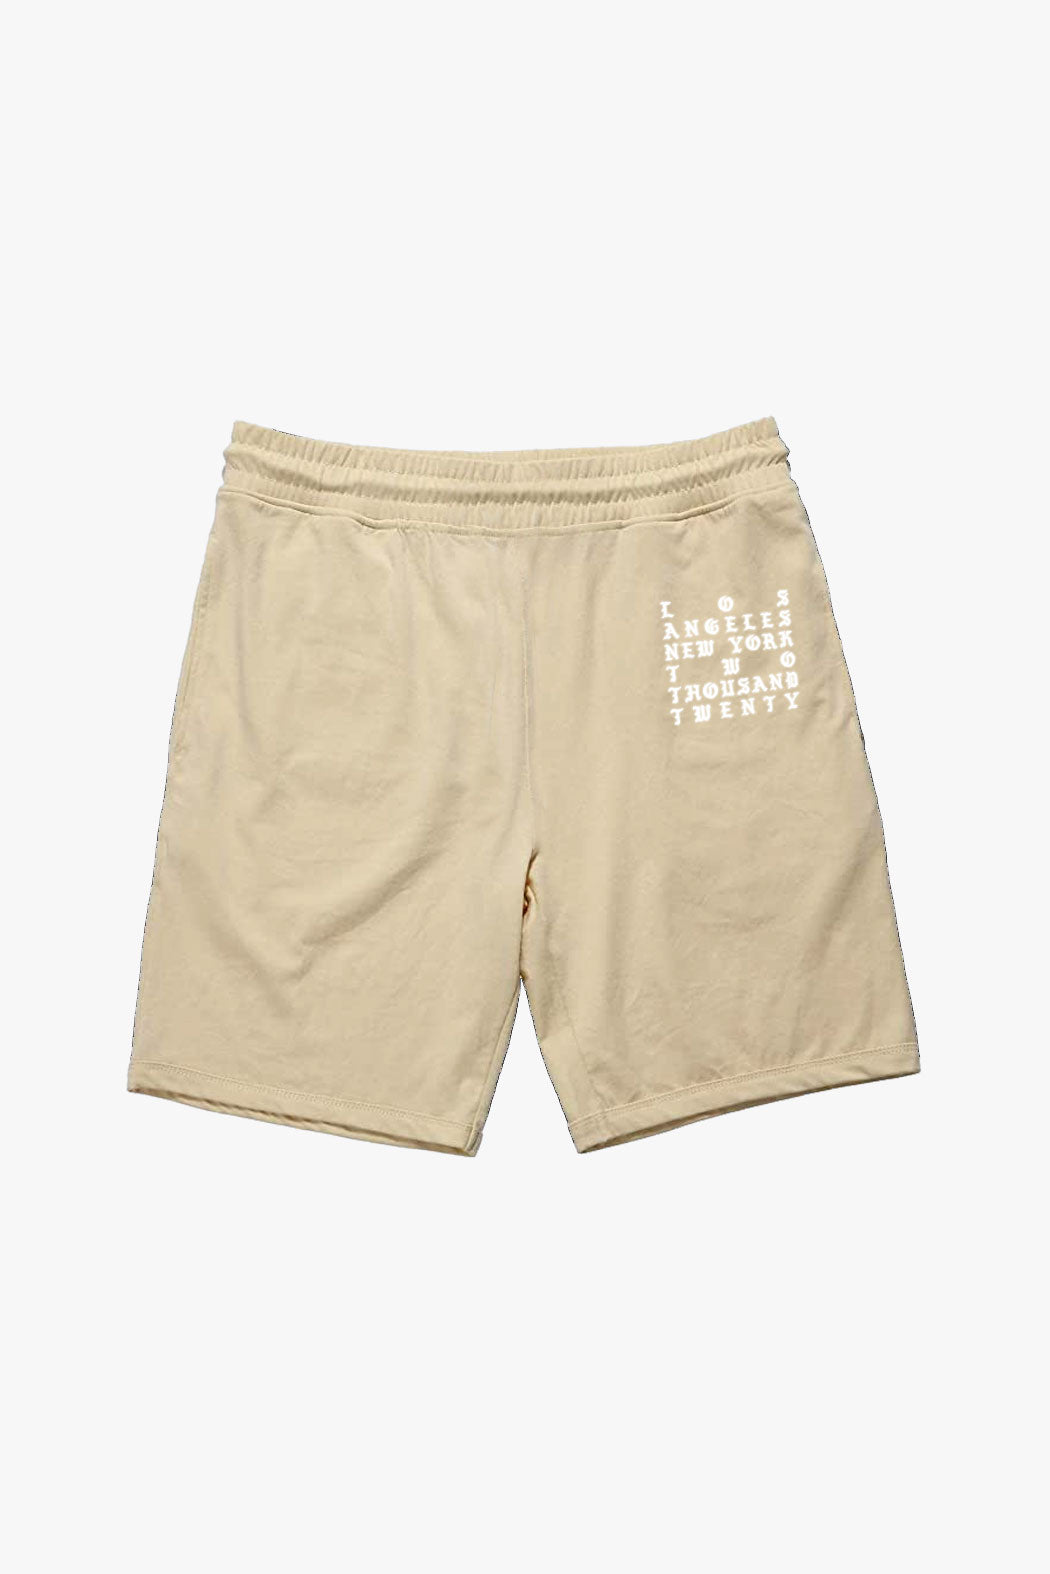 REFLECTIVE REVIVAL SHORTS